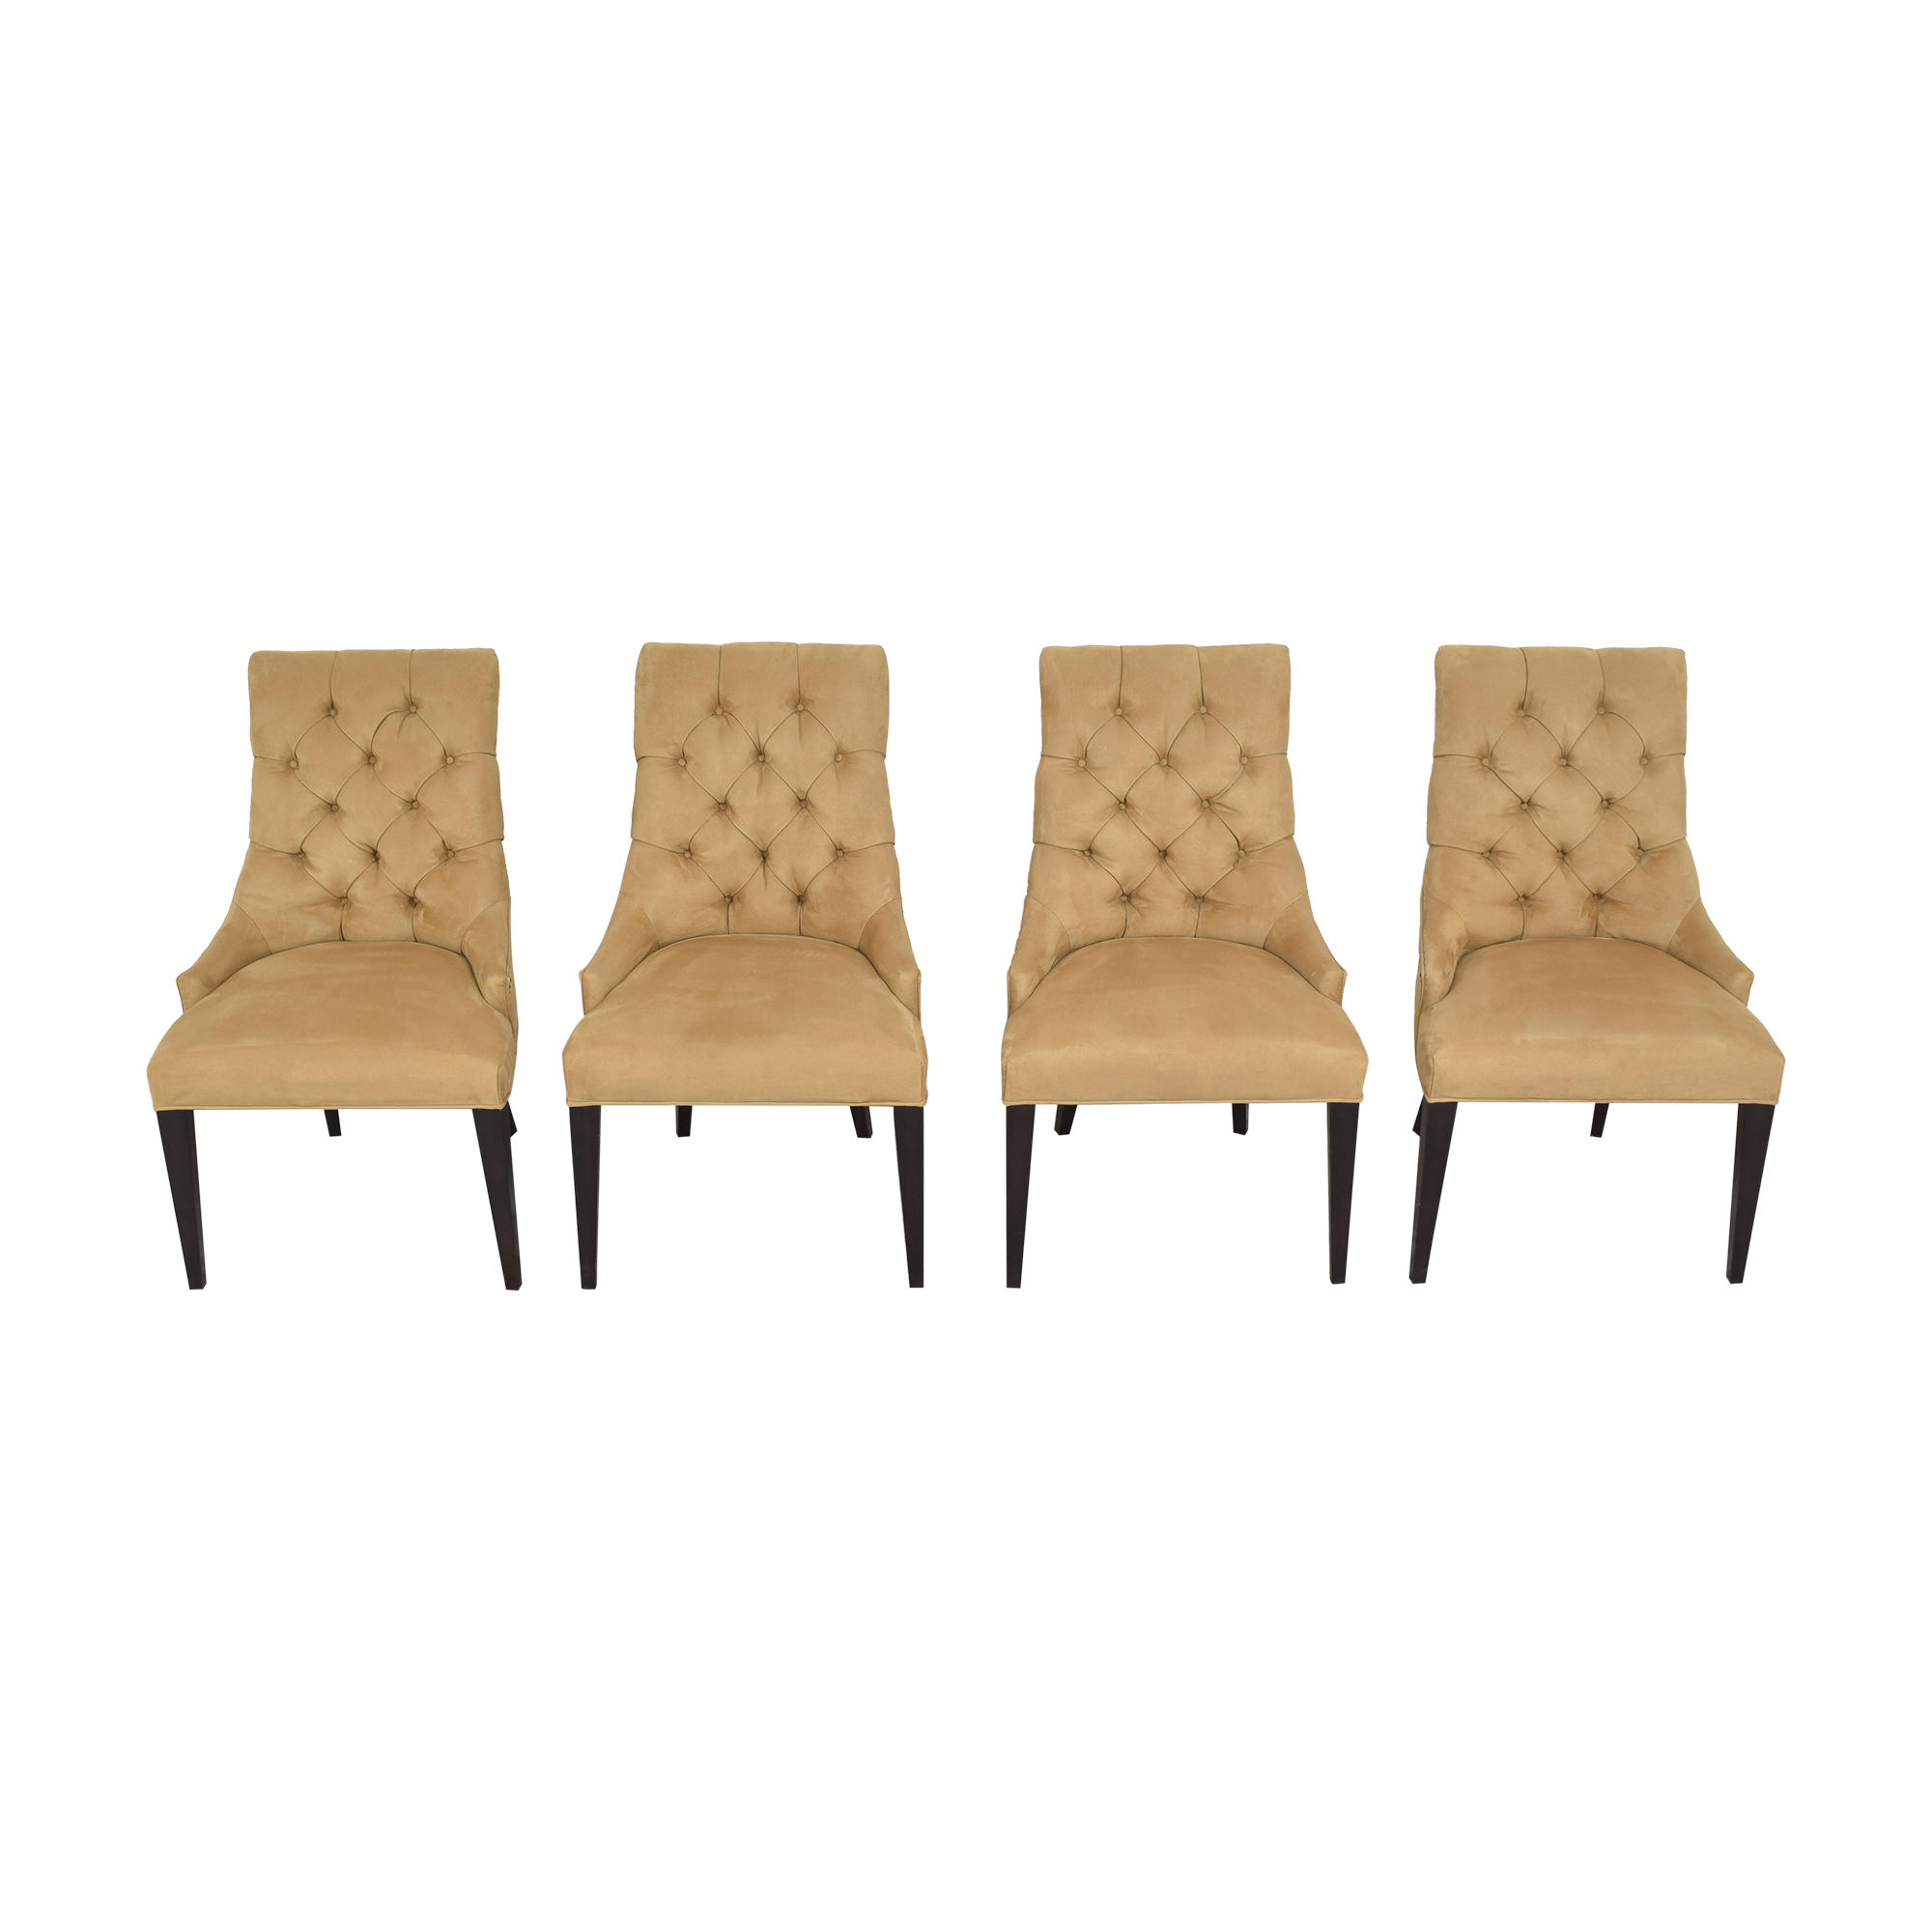 Restoration Hardware Restoration Hardware Martine Tufted Dining Armchairs ct